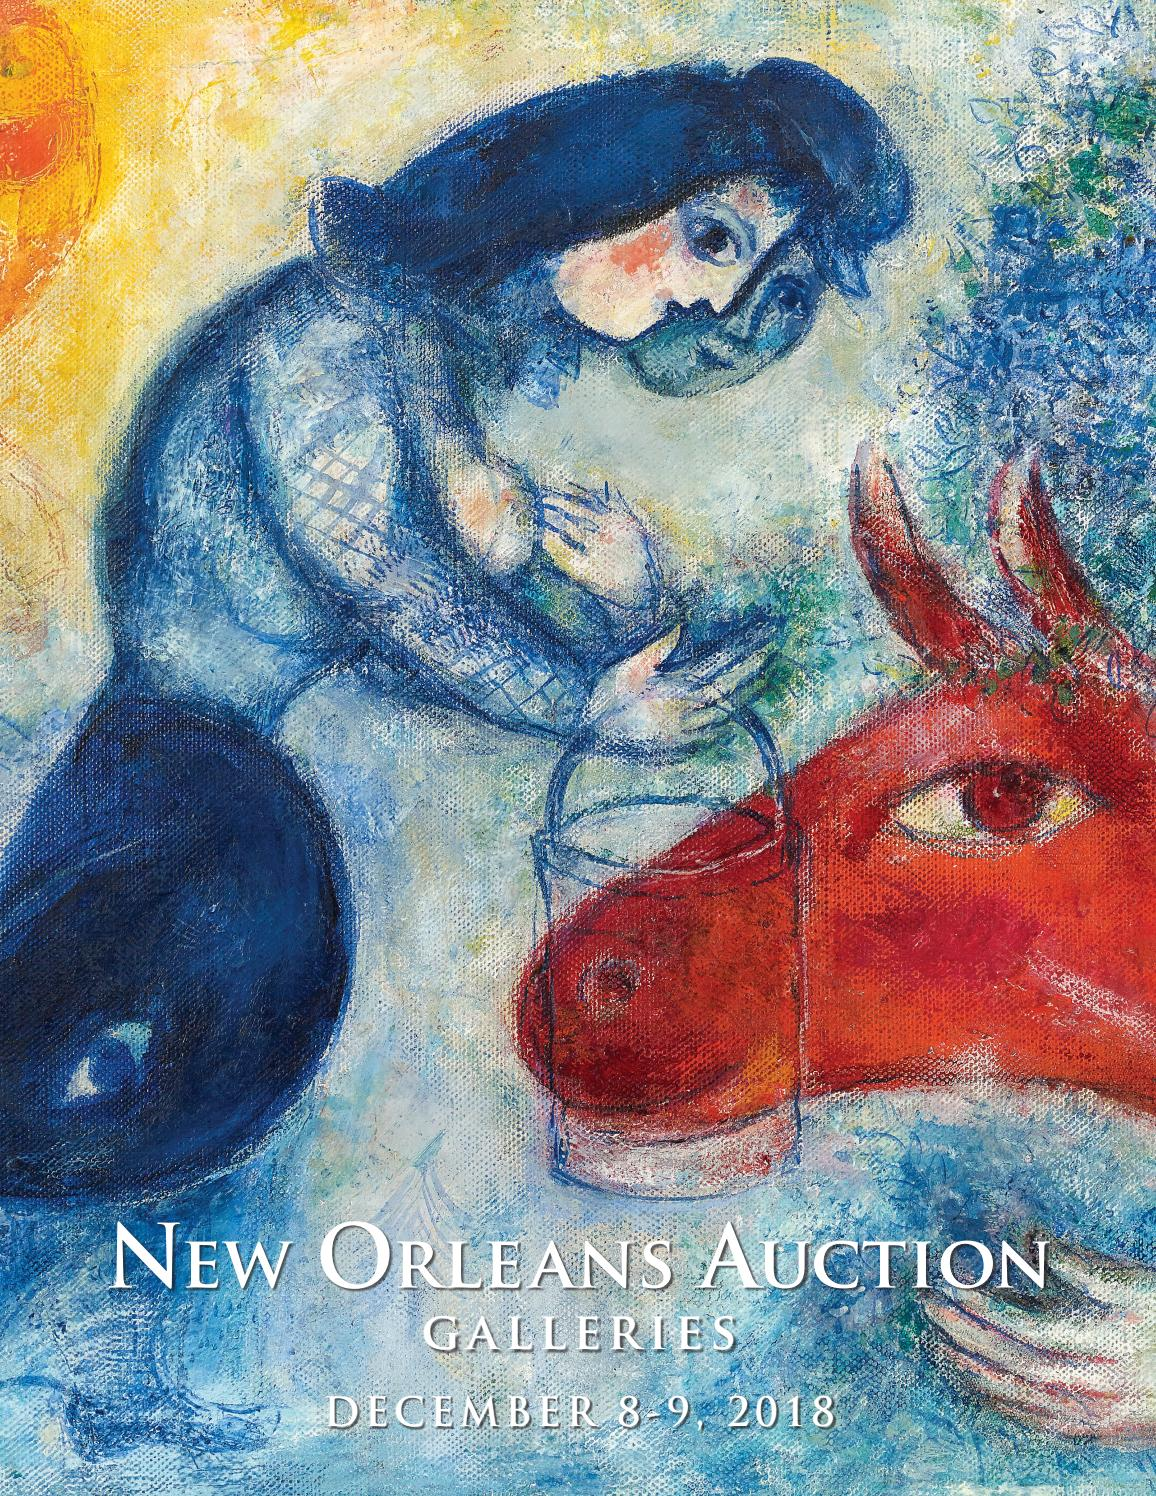 December 8 9 2018 Estates Auction By New Orleans Auction Galleries Issuu